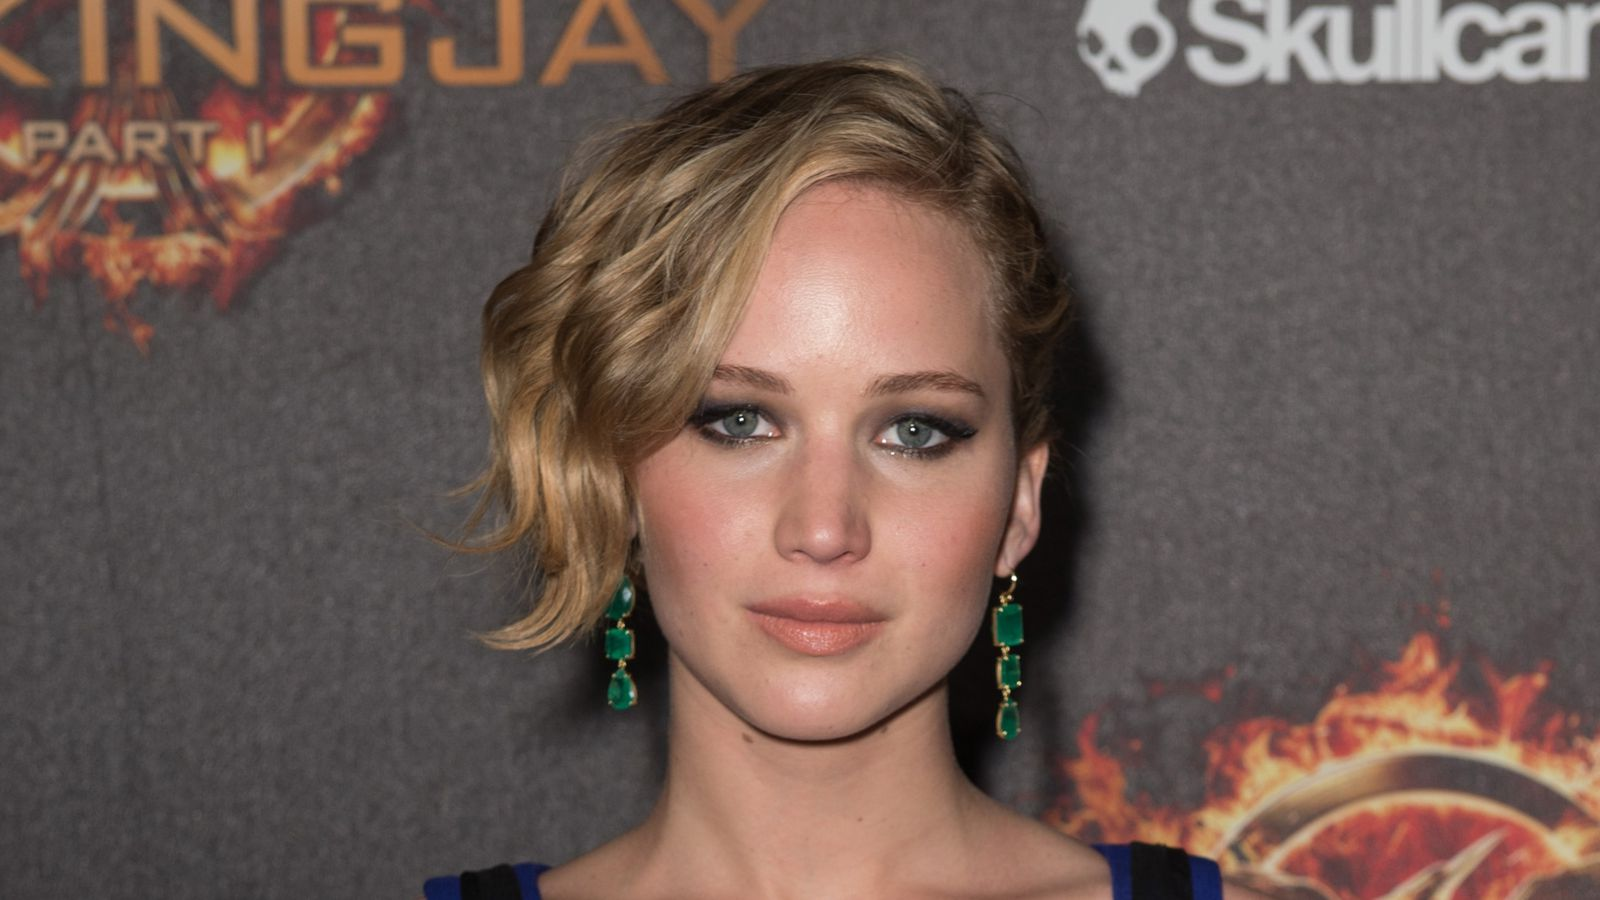 What Was It Like For Jennifer Lawrence When Her Nude Pics